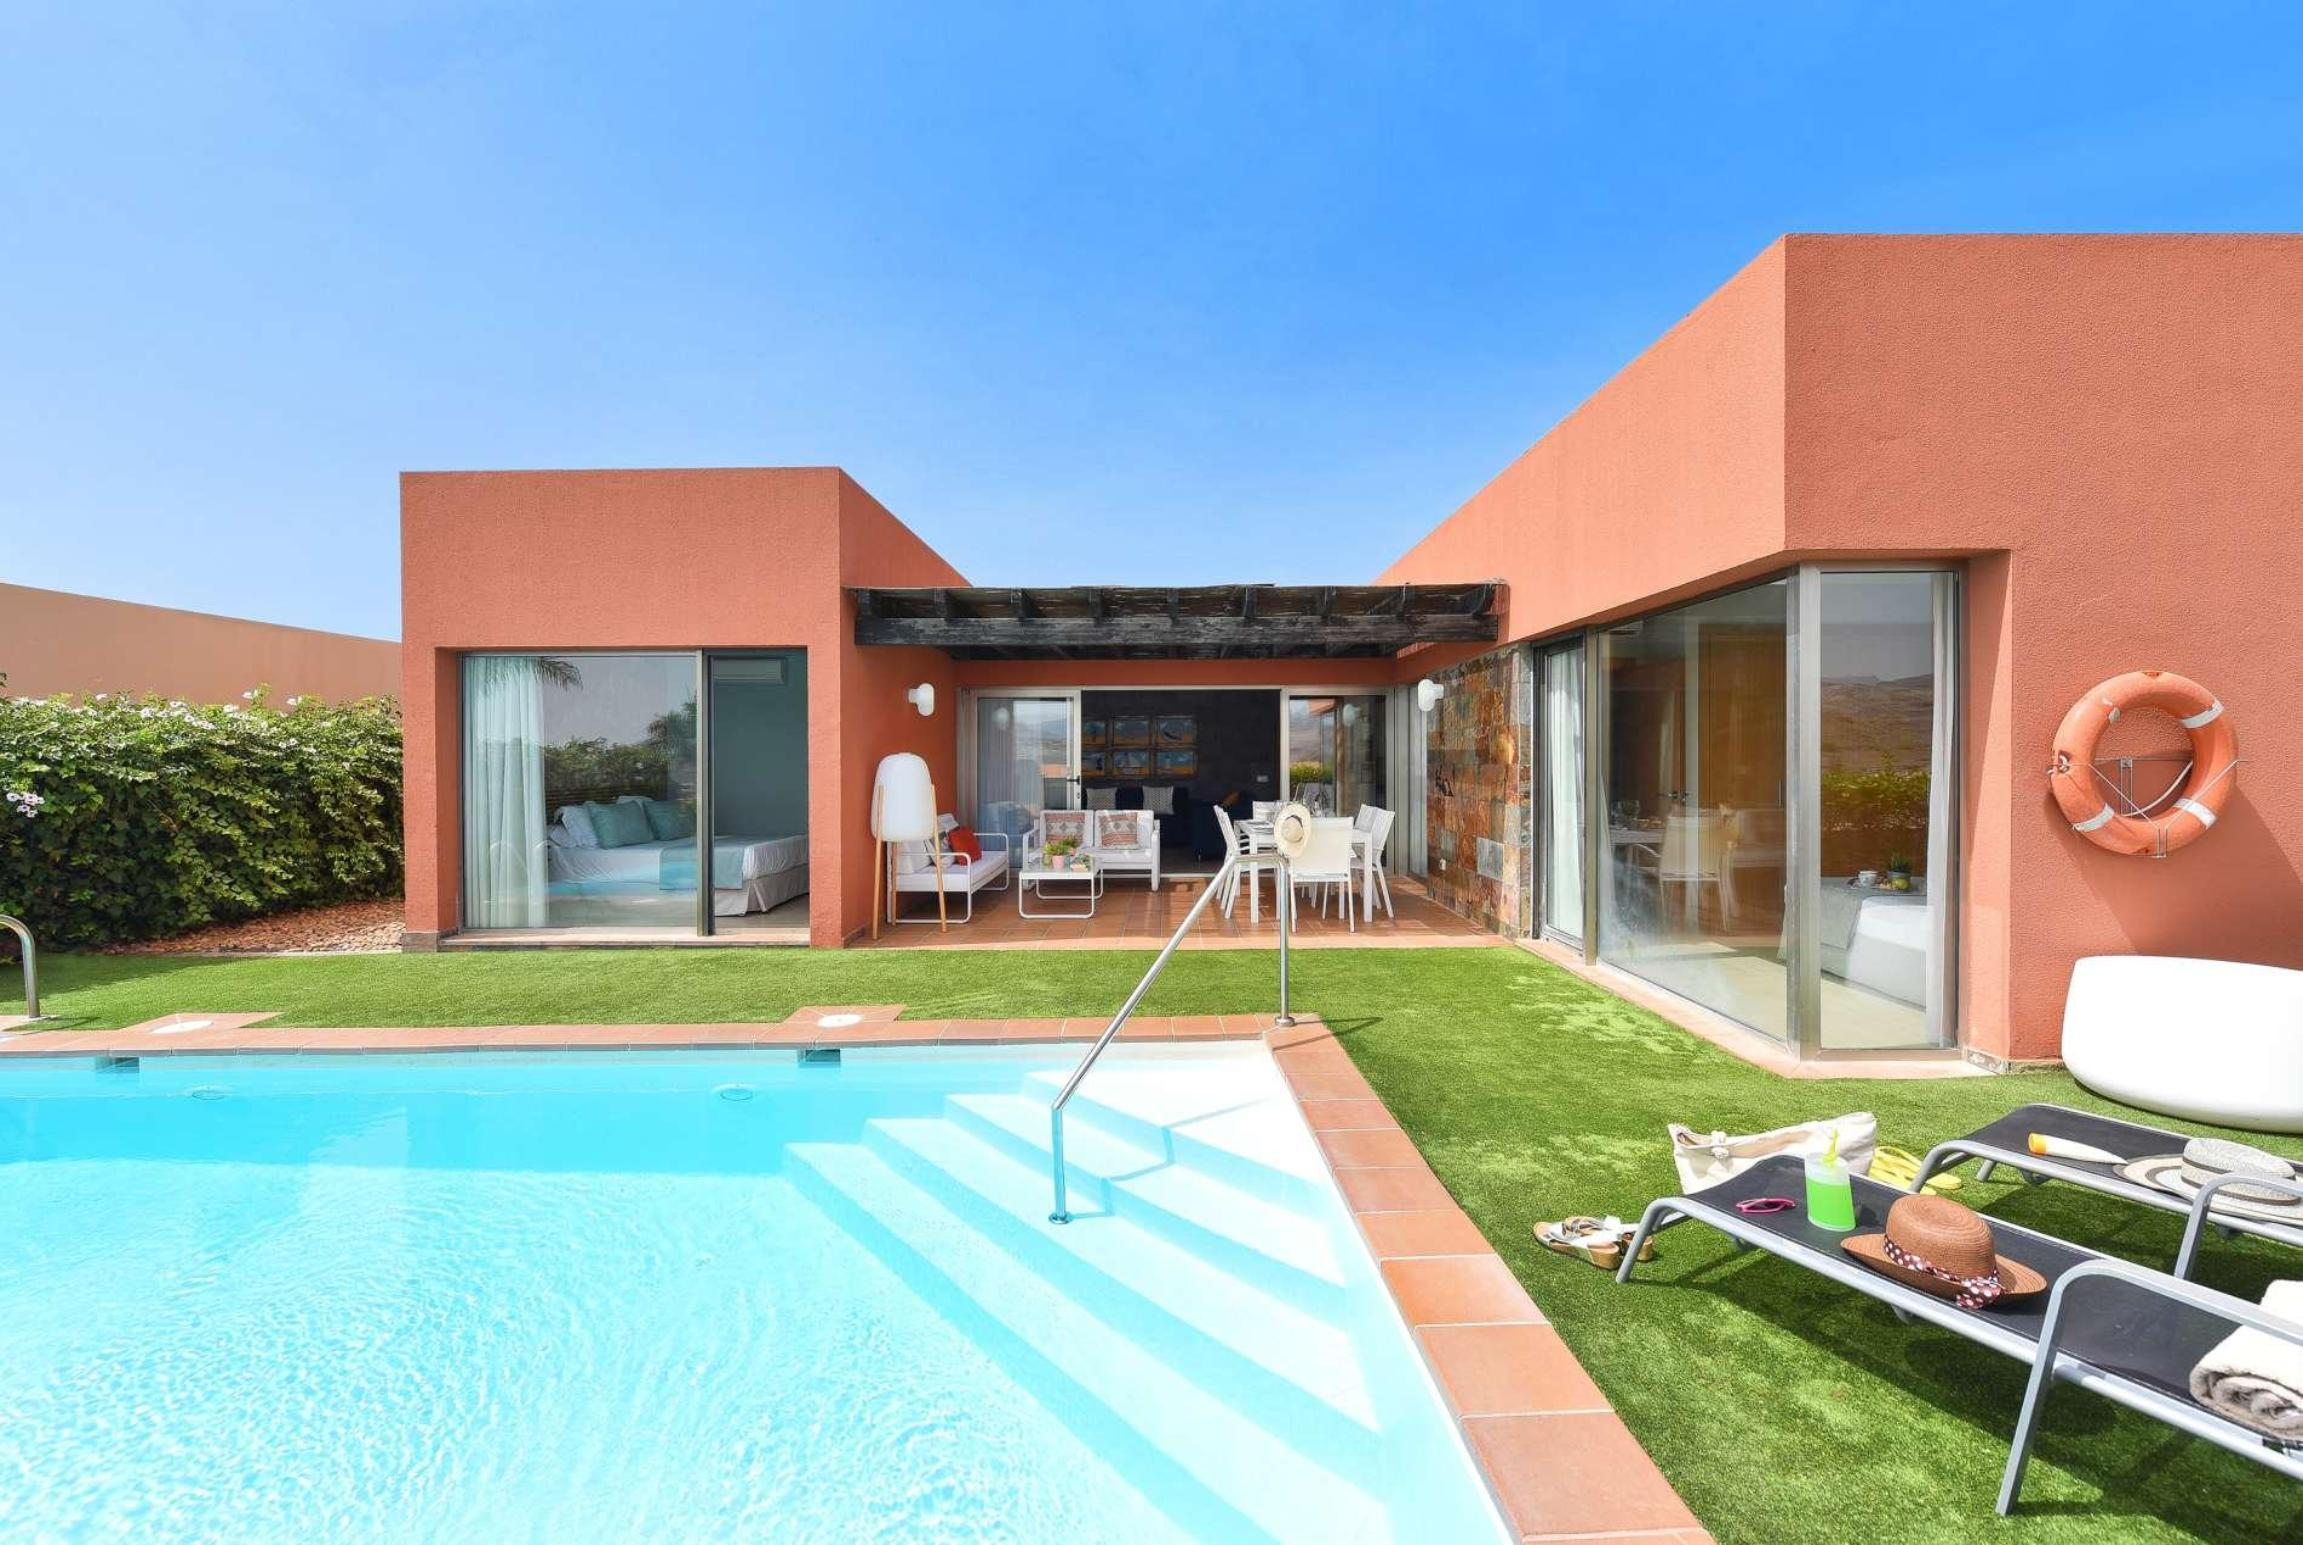 Read more about Par 4 Villa 1 villa